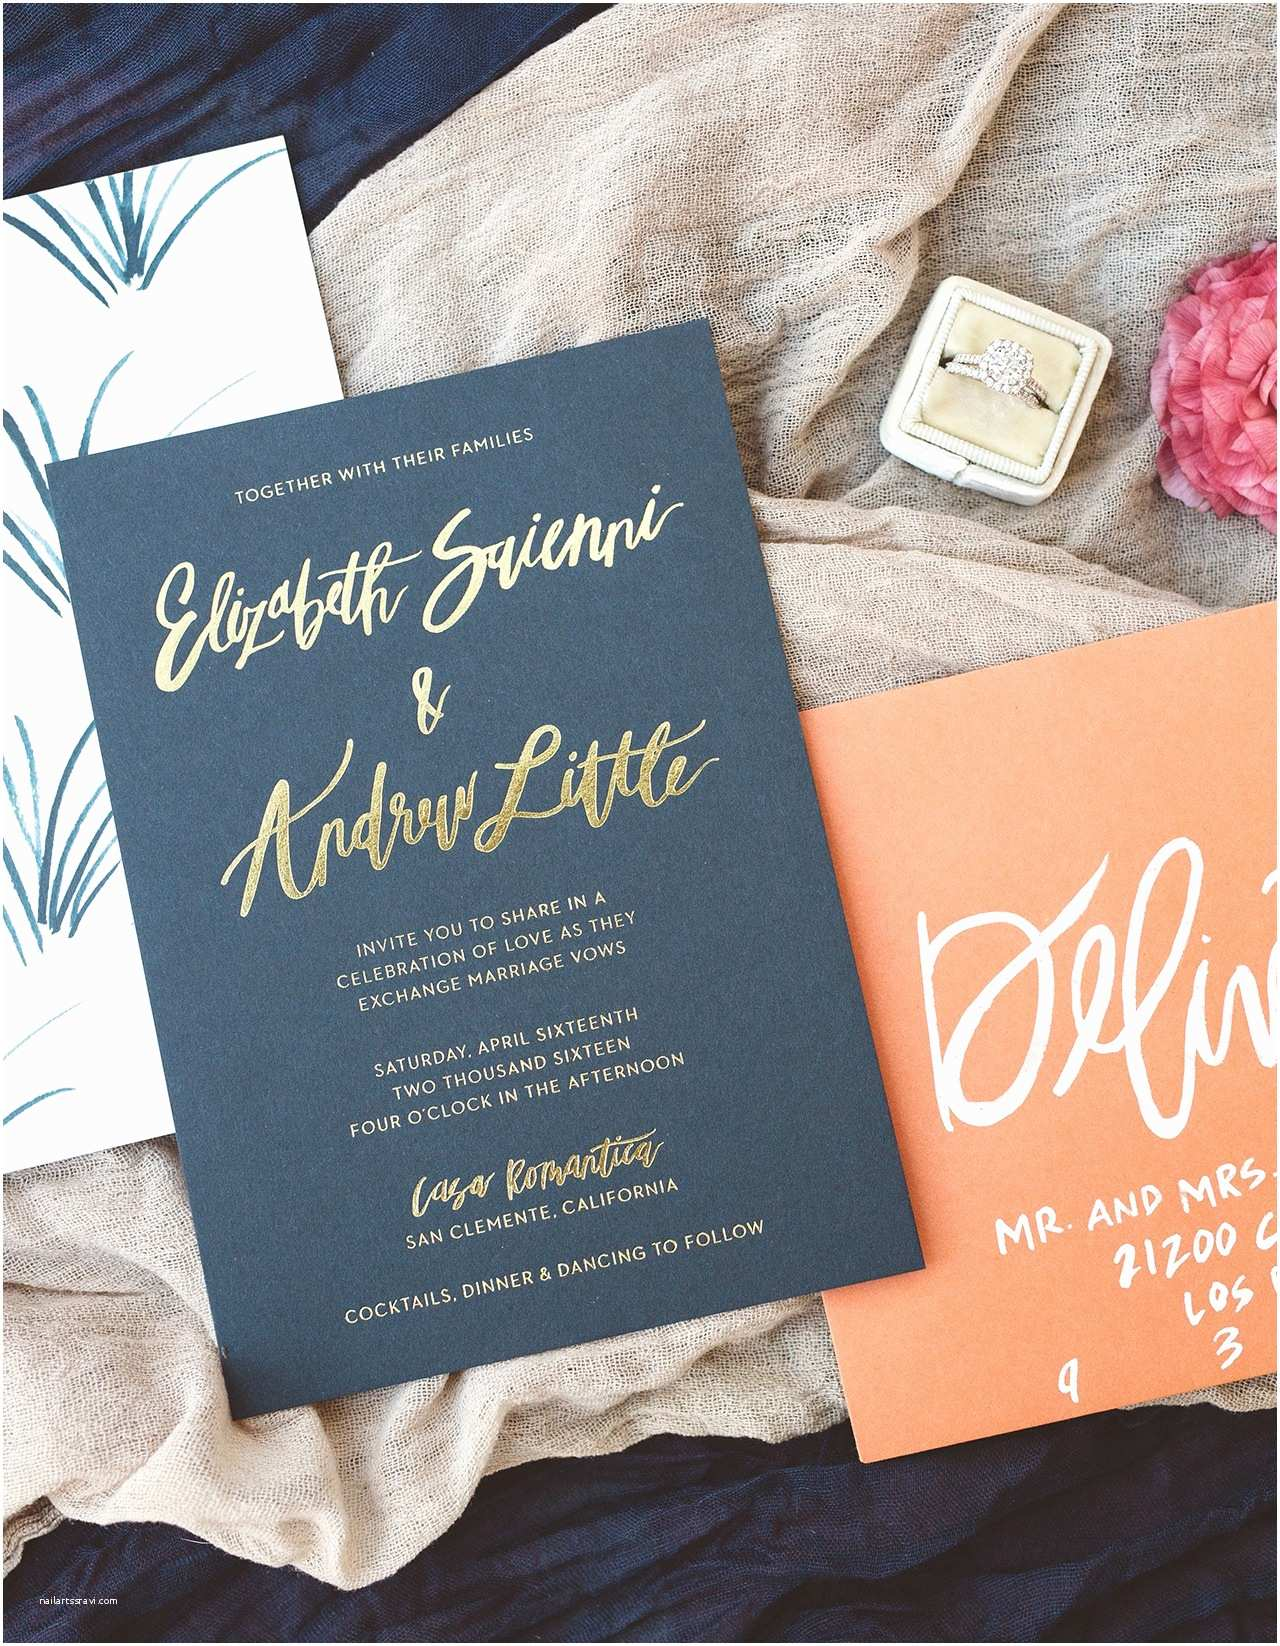 Navy Blue and Coral Wedding Invitations Brush Lettered Gold and Navy Wedding Invitations